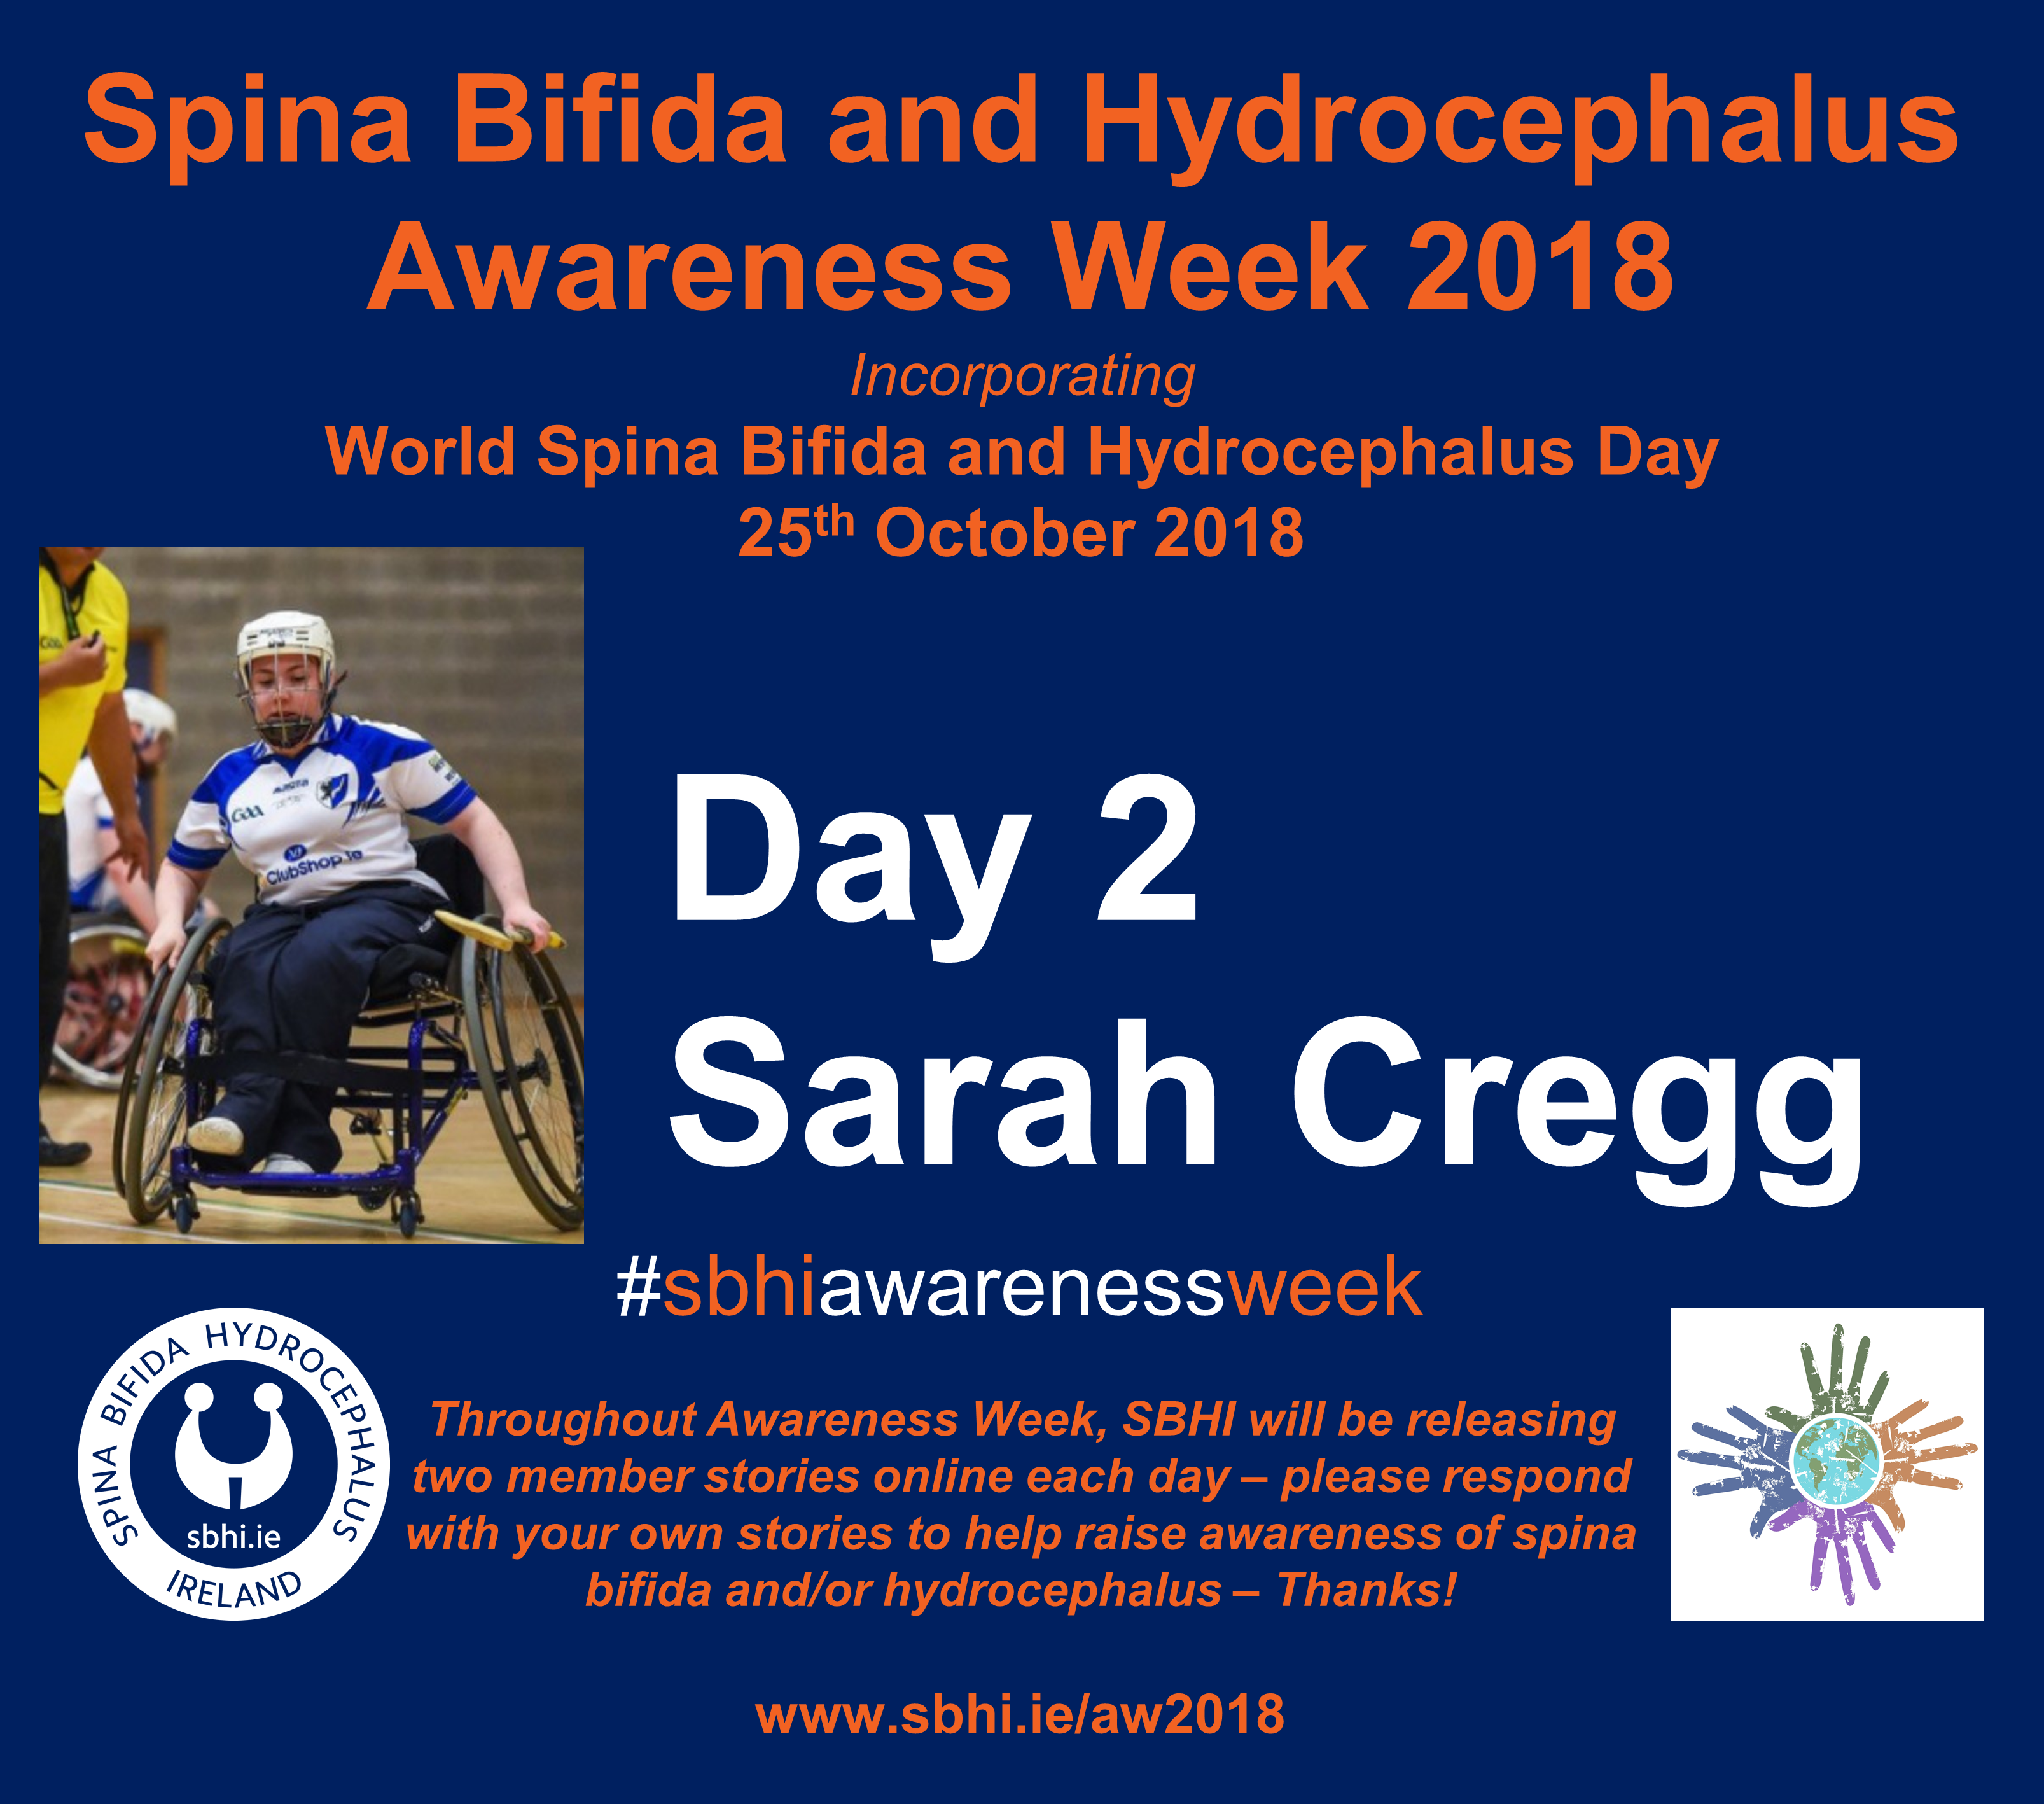 Spina Bifida Hydrocephalus Awareness Week 2018 - SBHI